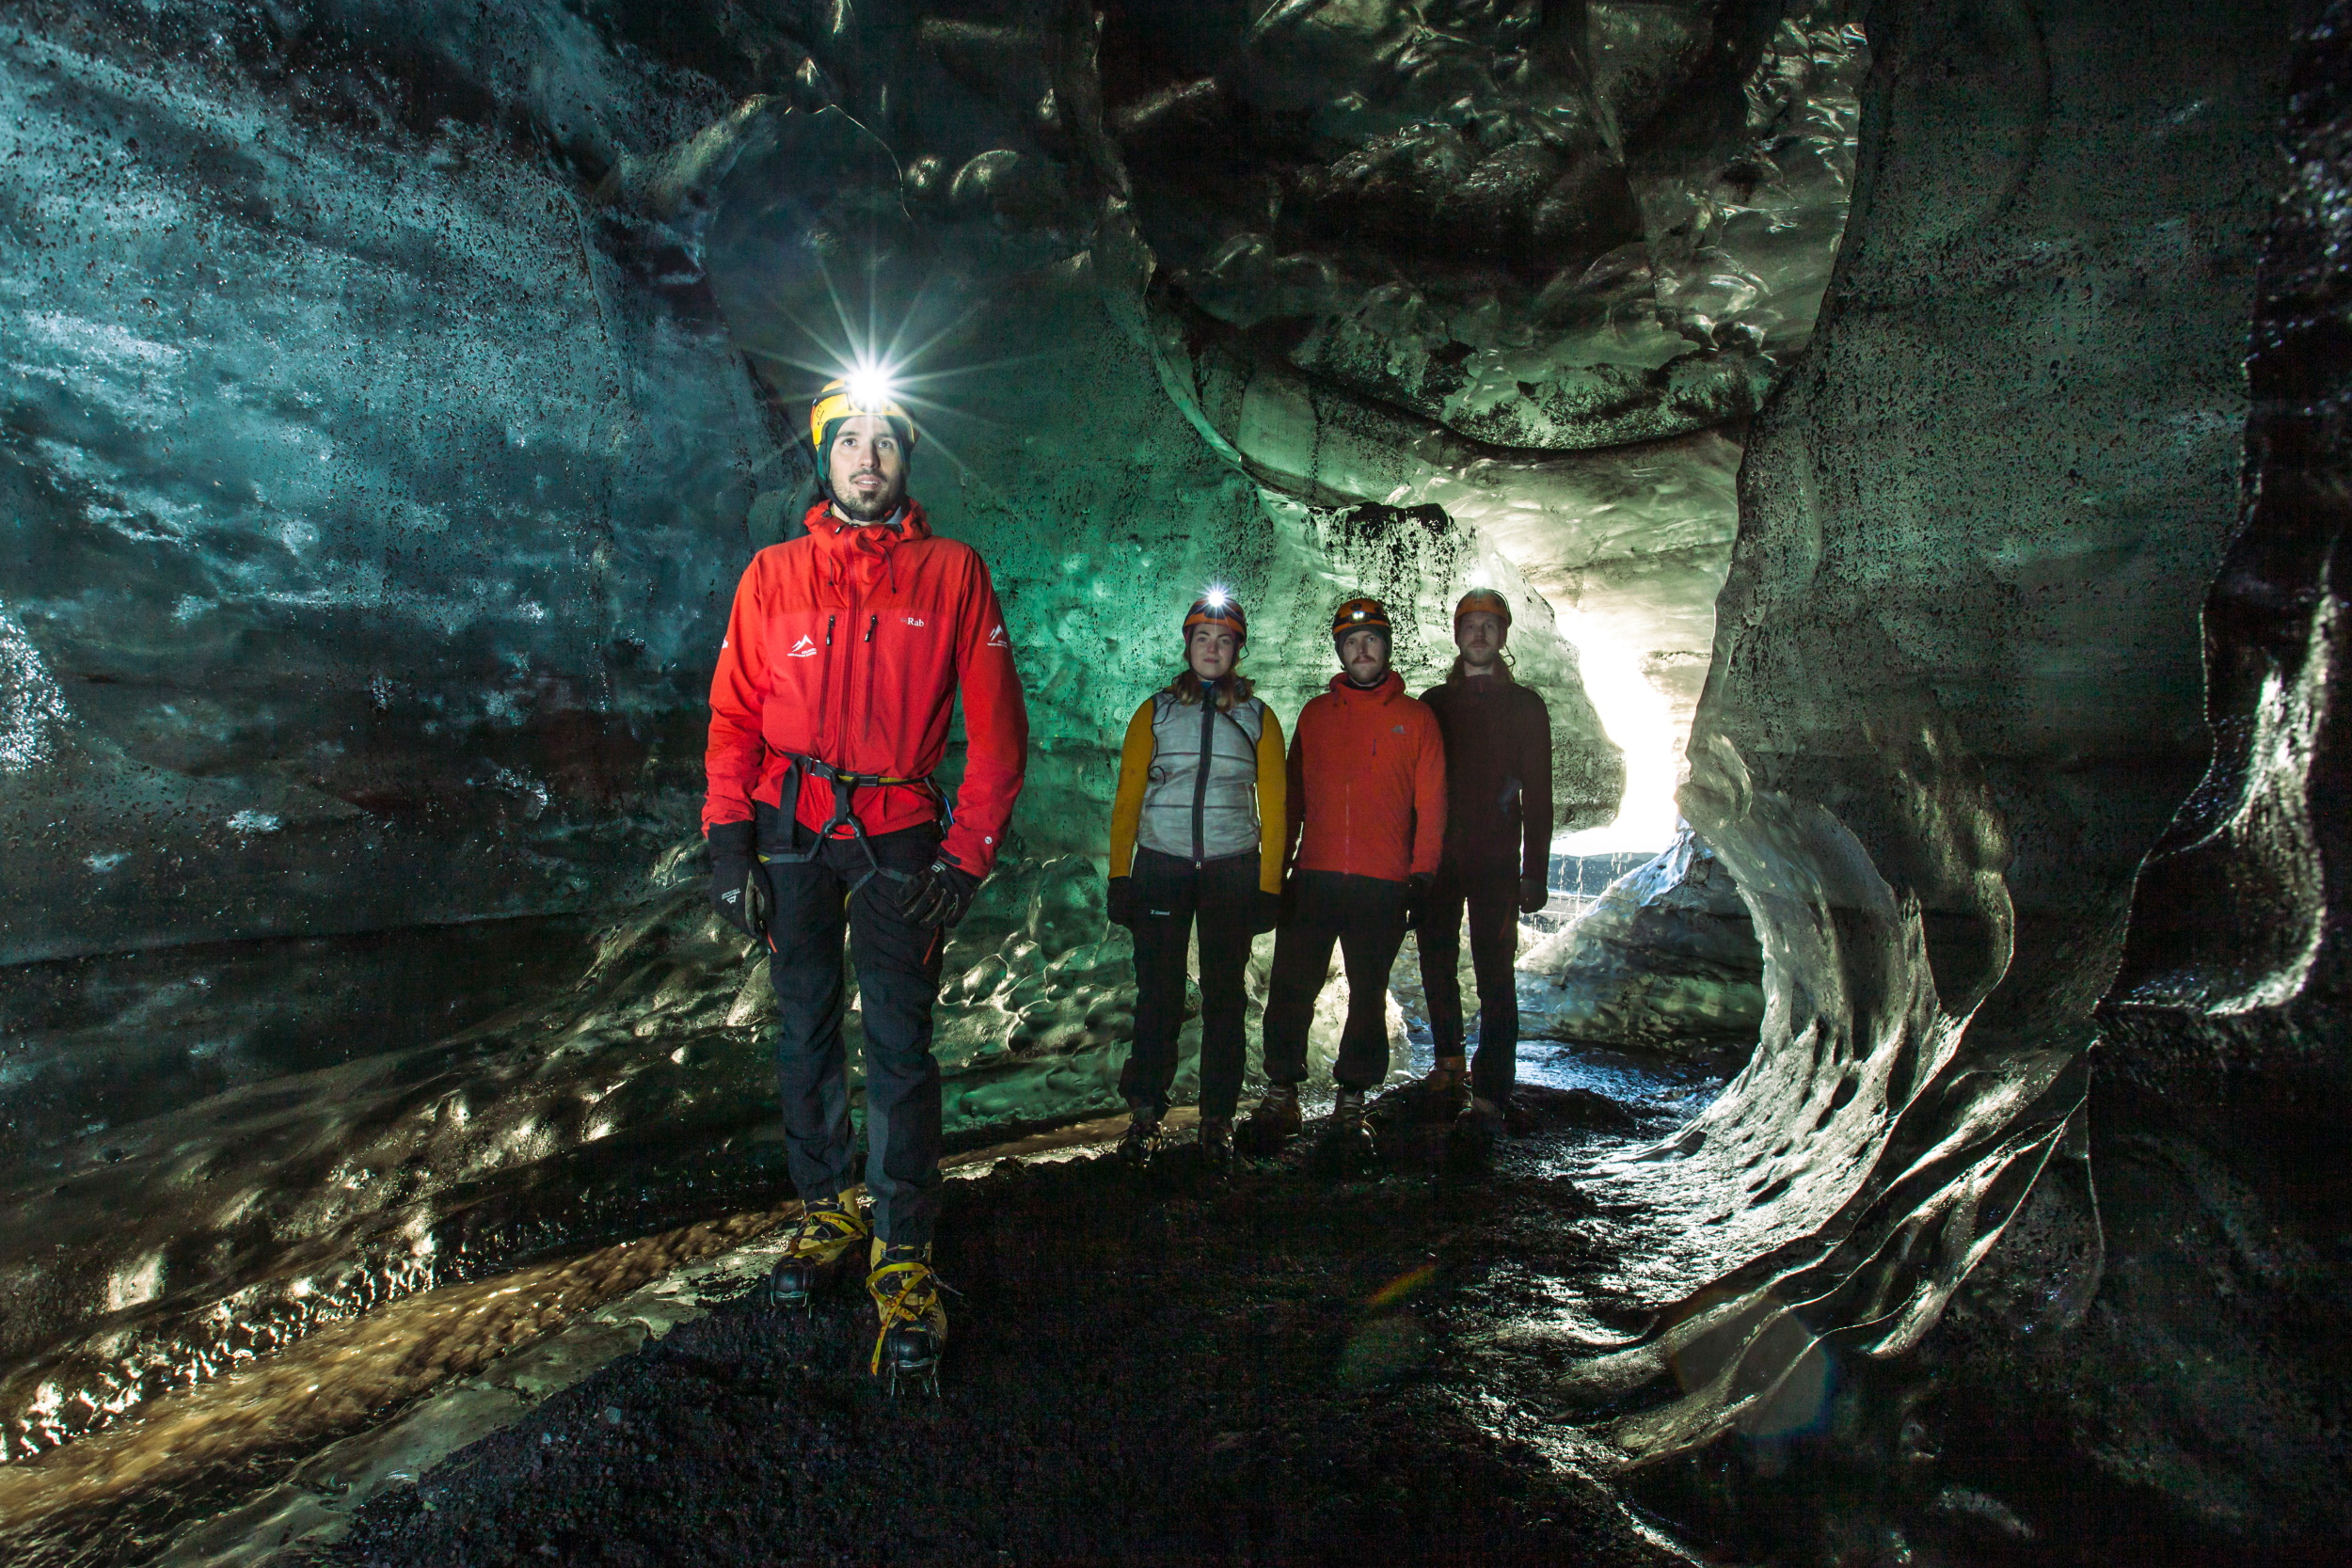 People exploring a cave in Iceland